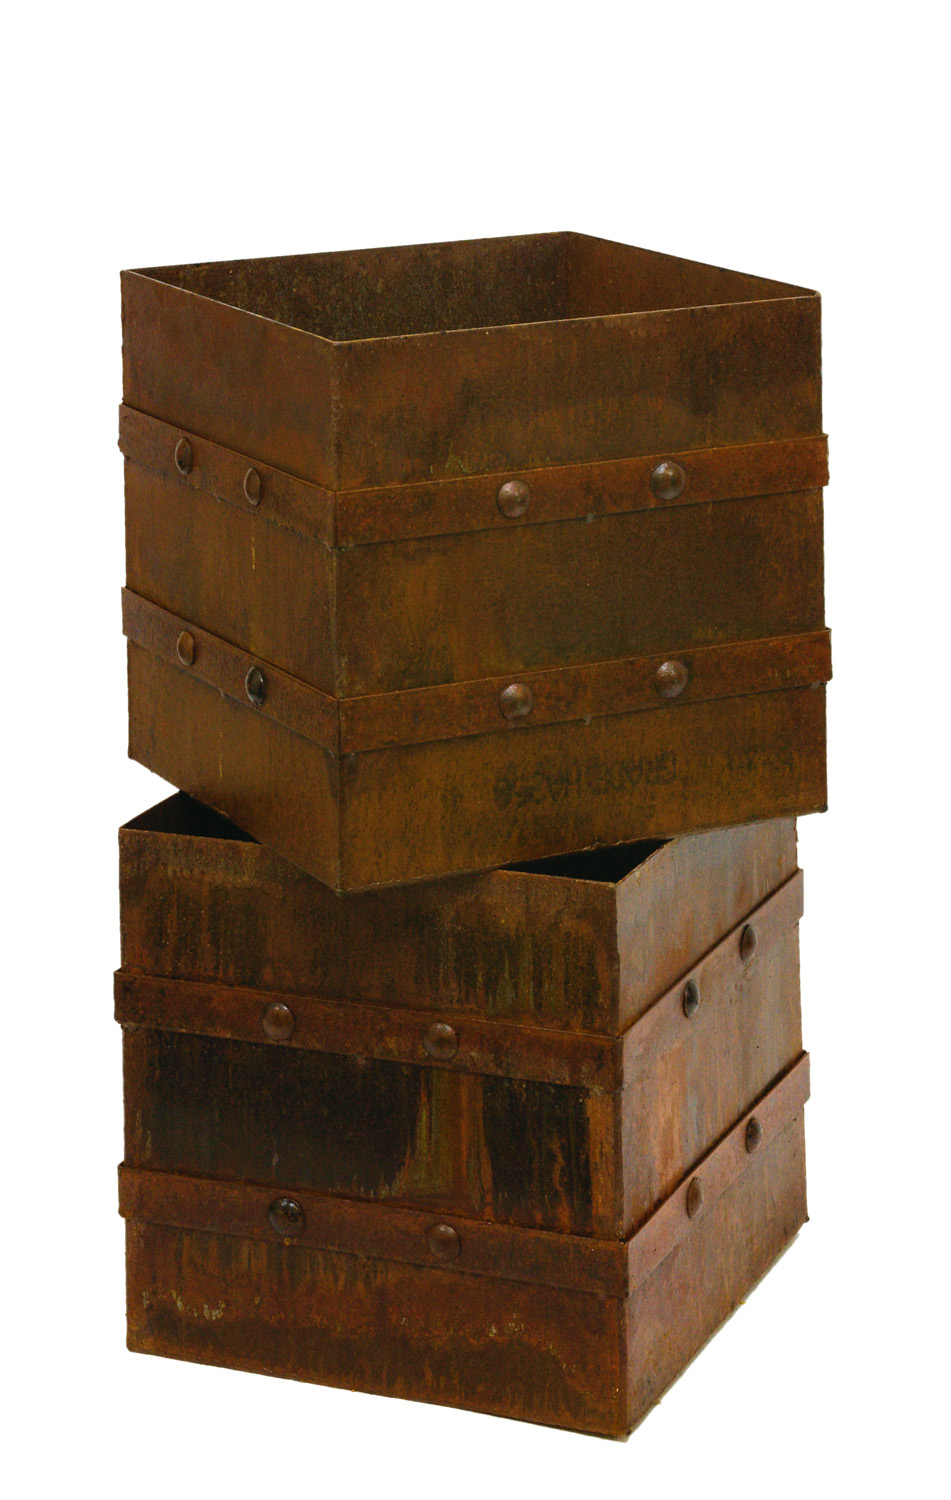 Square Rivet planters with slightly elevated feet from Entanglements www.entanglements.com.au